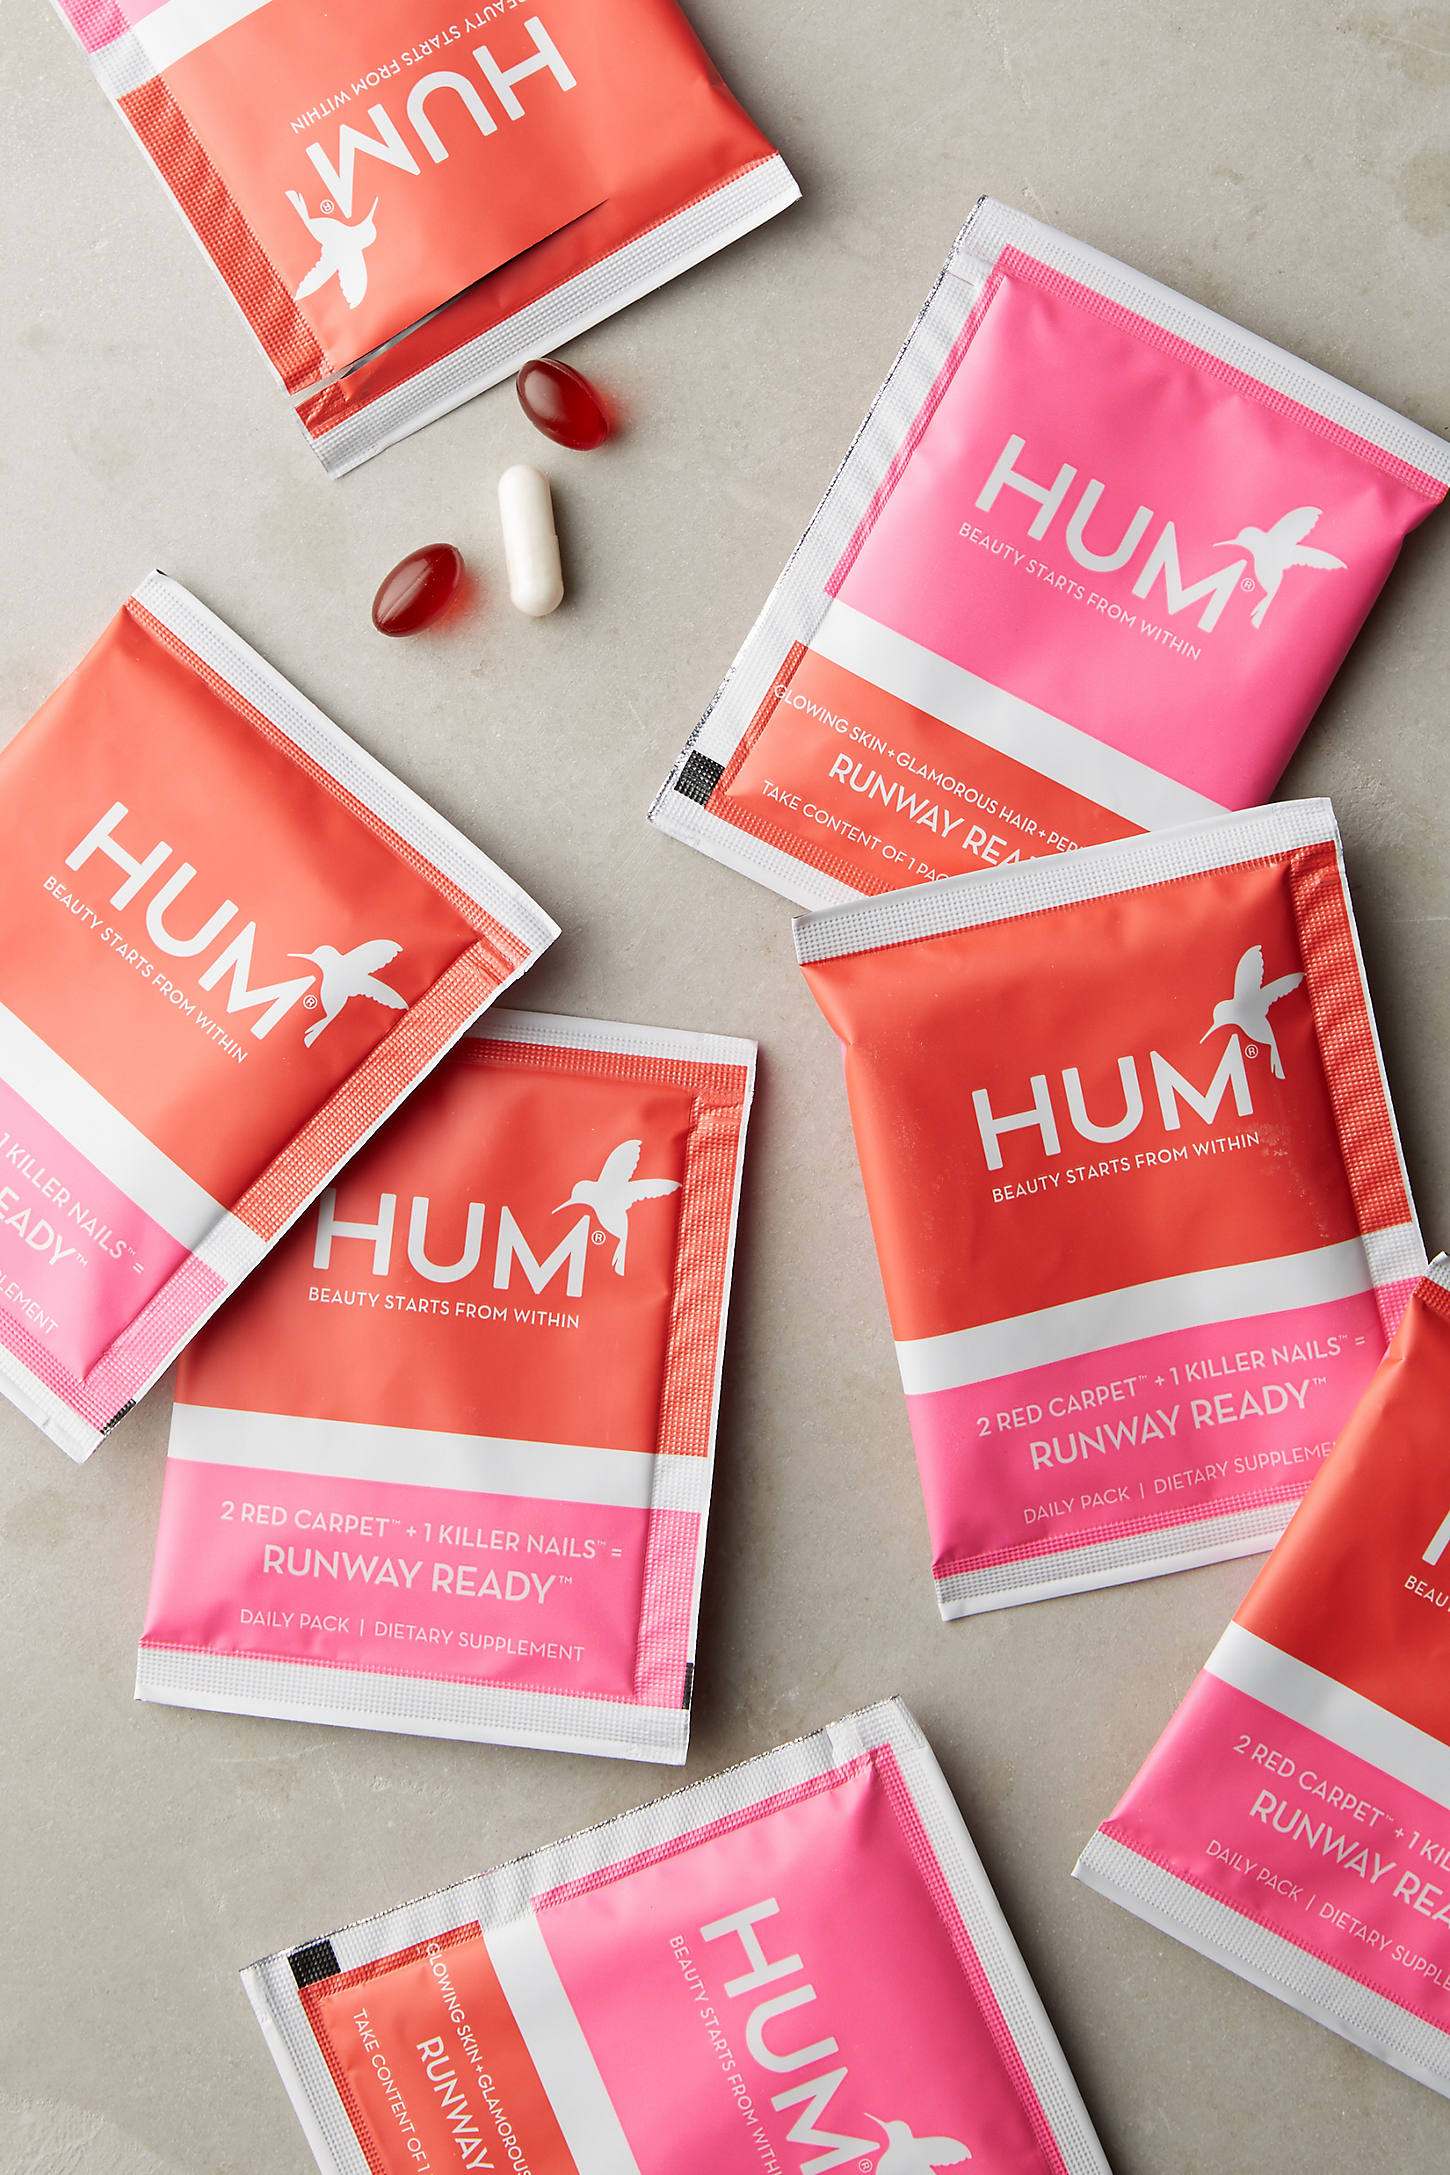 Hum Nutrition Runway Ready Supplements